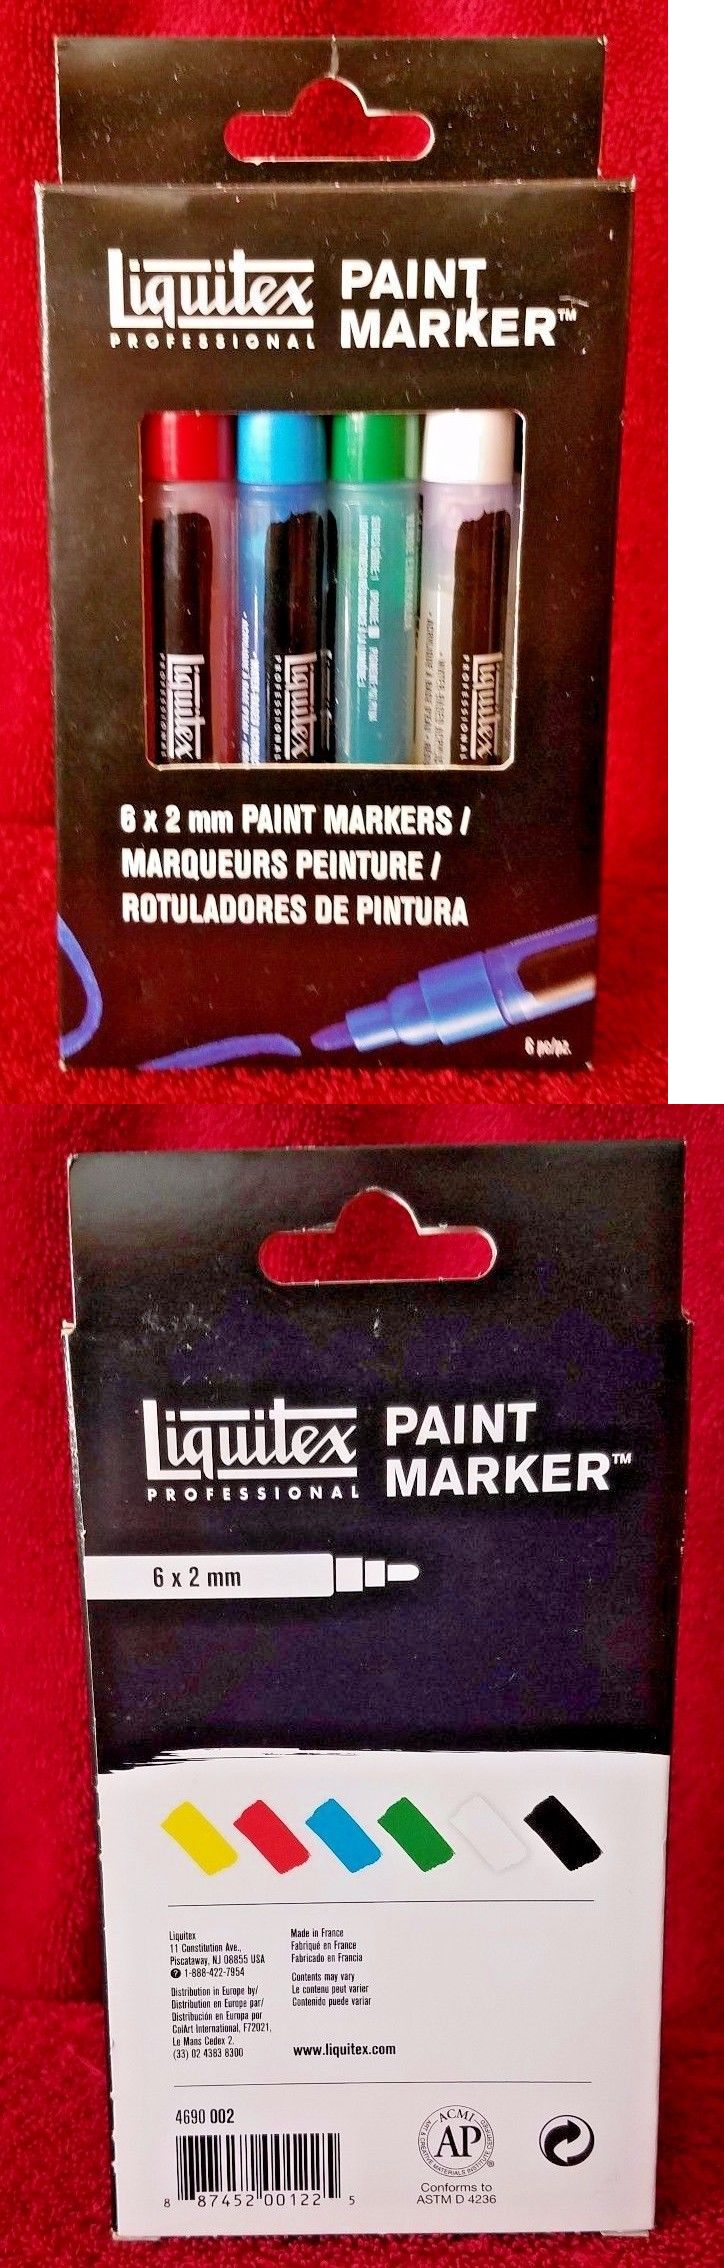 Art Paintings Mixed Media Collage: Liquitex 6 X 2Mm 6-Piece Professional Paint Marker Set Free Shipping Sealed New -> BUY IT NOW ONLY: $30.71 on eBay!